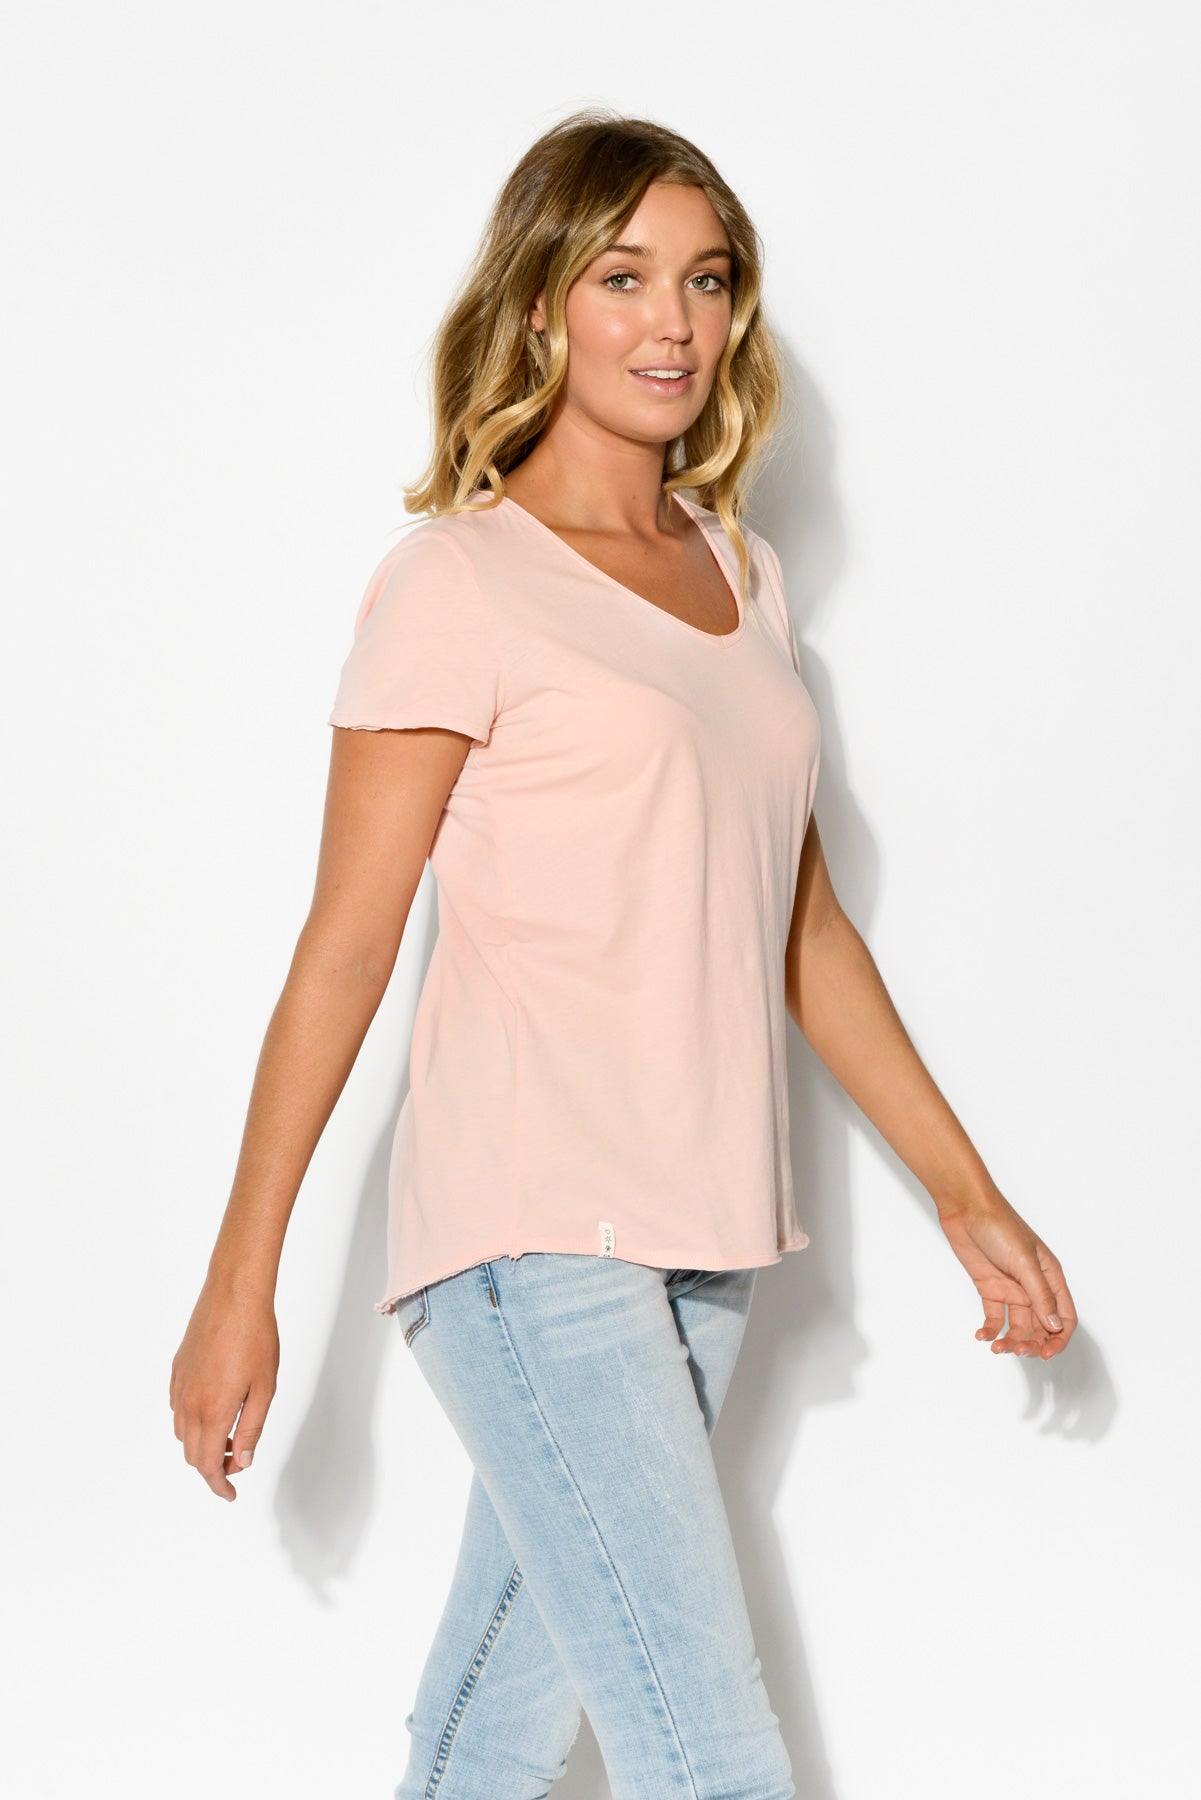 Fundamental Pink Cotton Tee - Blue Bungalow